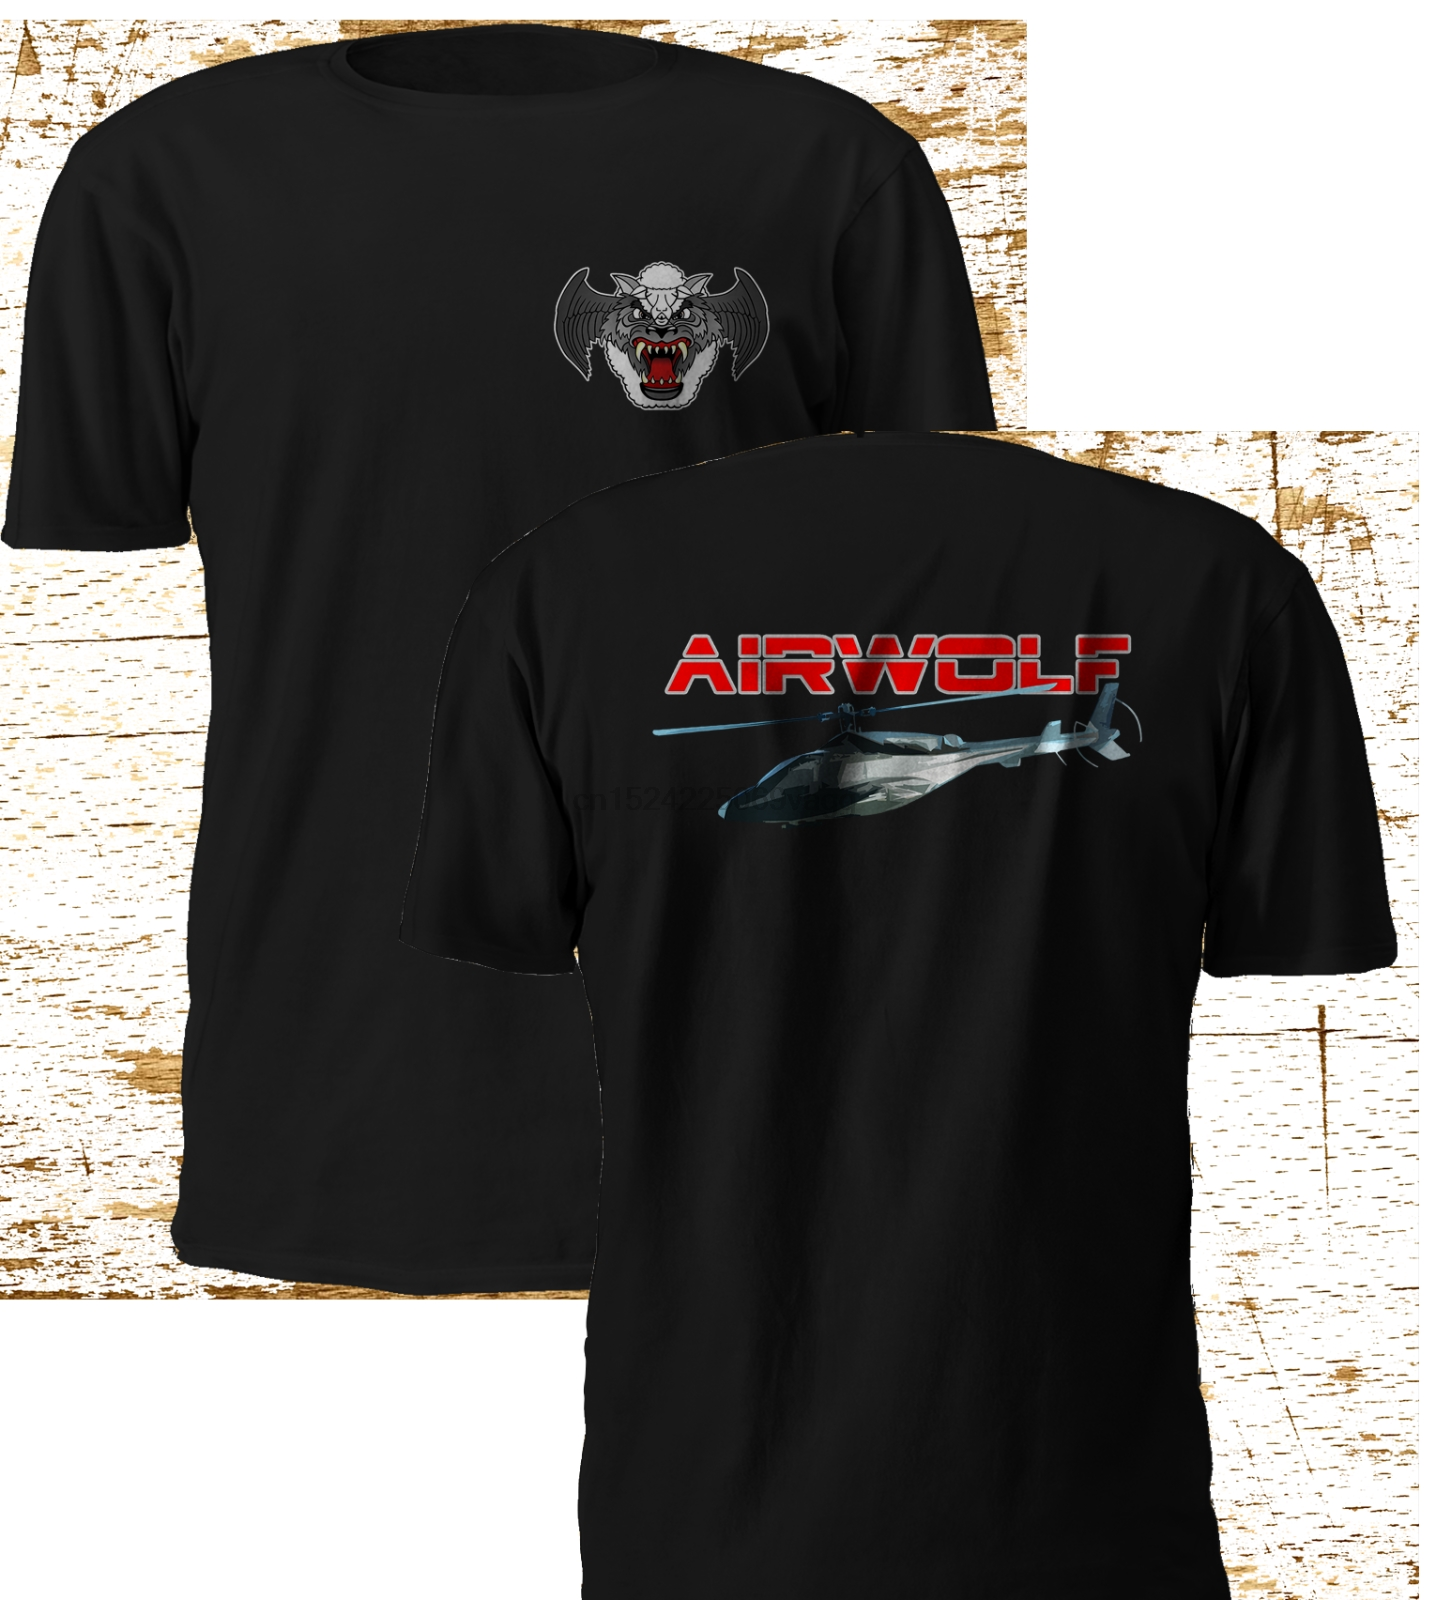 New Rare Airwolf Helicopter Combat Tv Series Blue Thunder Black T Shirt S-3xl Men's Clothing Tops & Tees